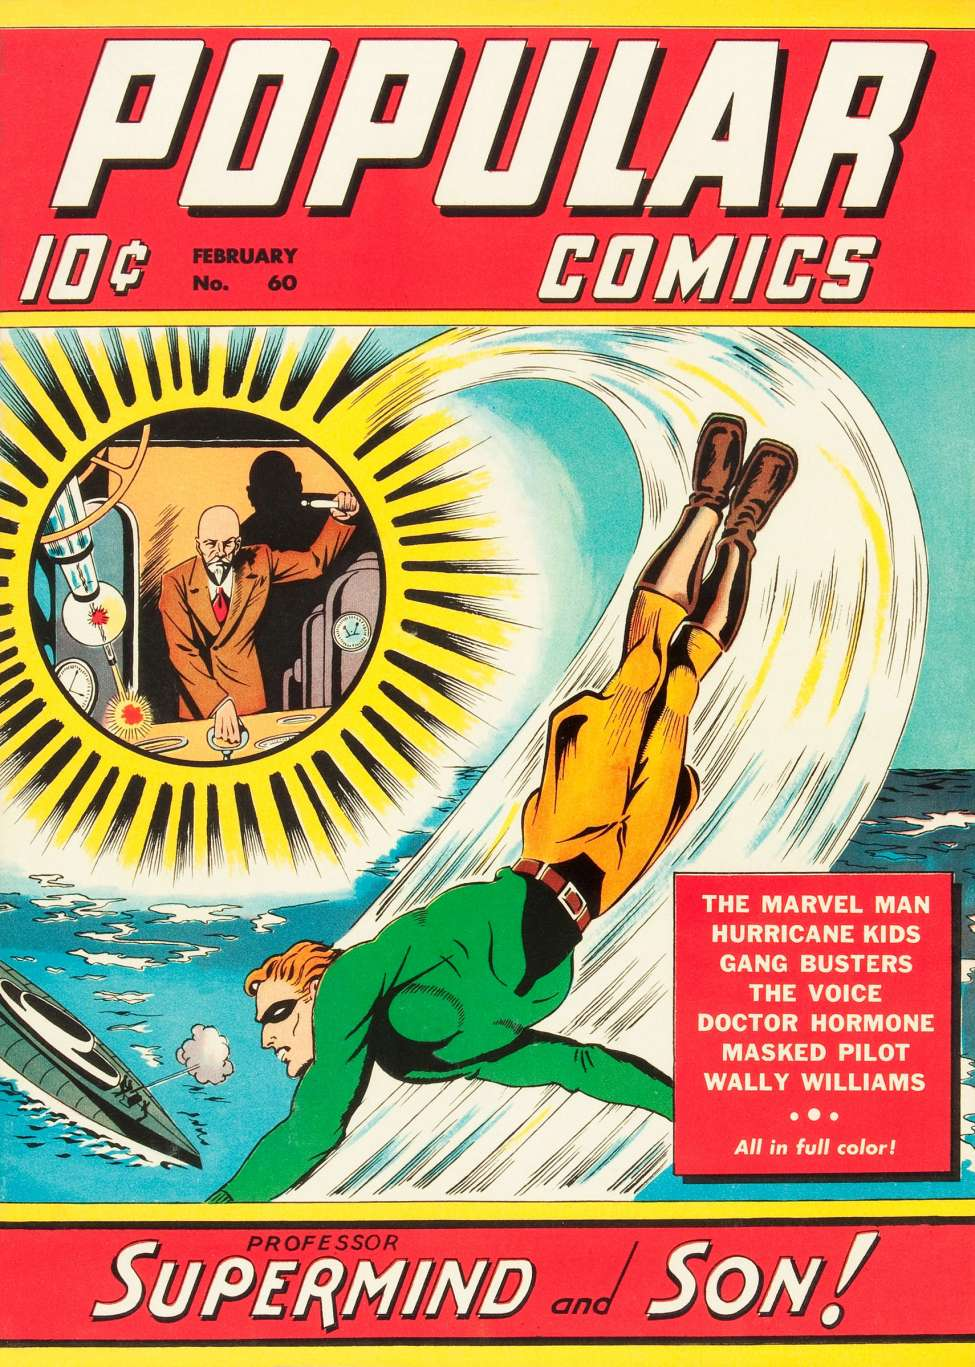 Comic Book Cover For Popular Comics #60